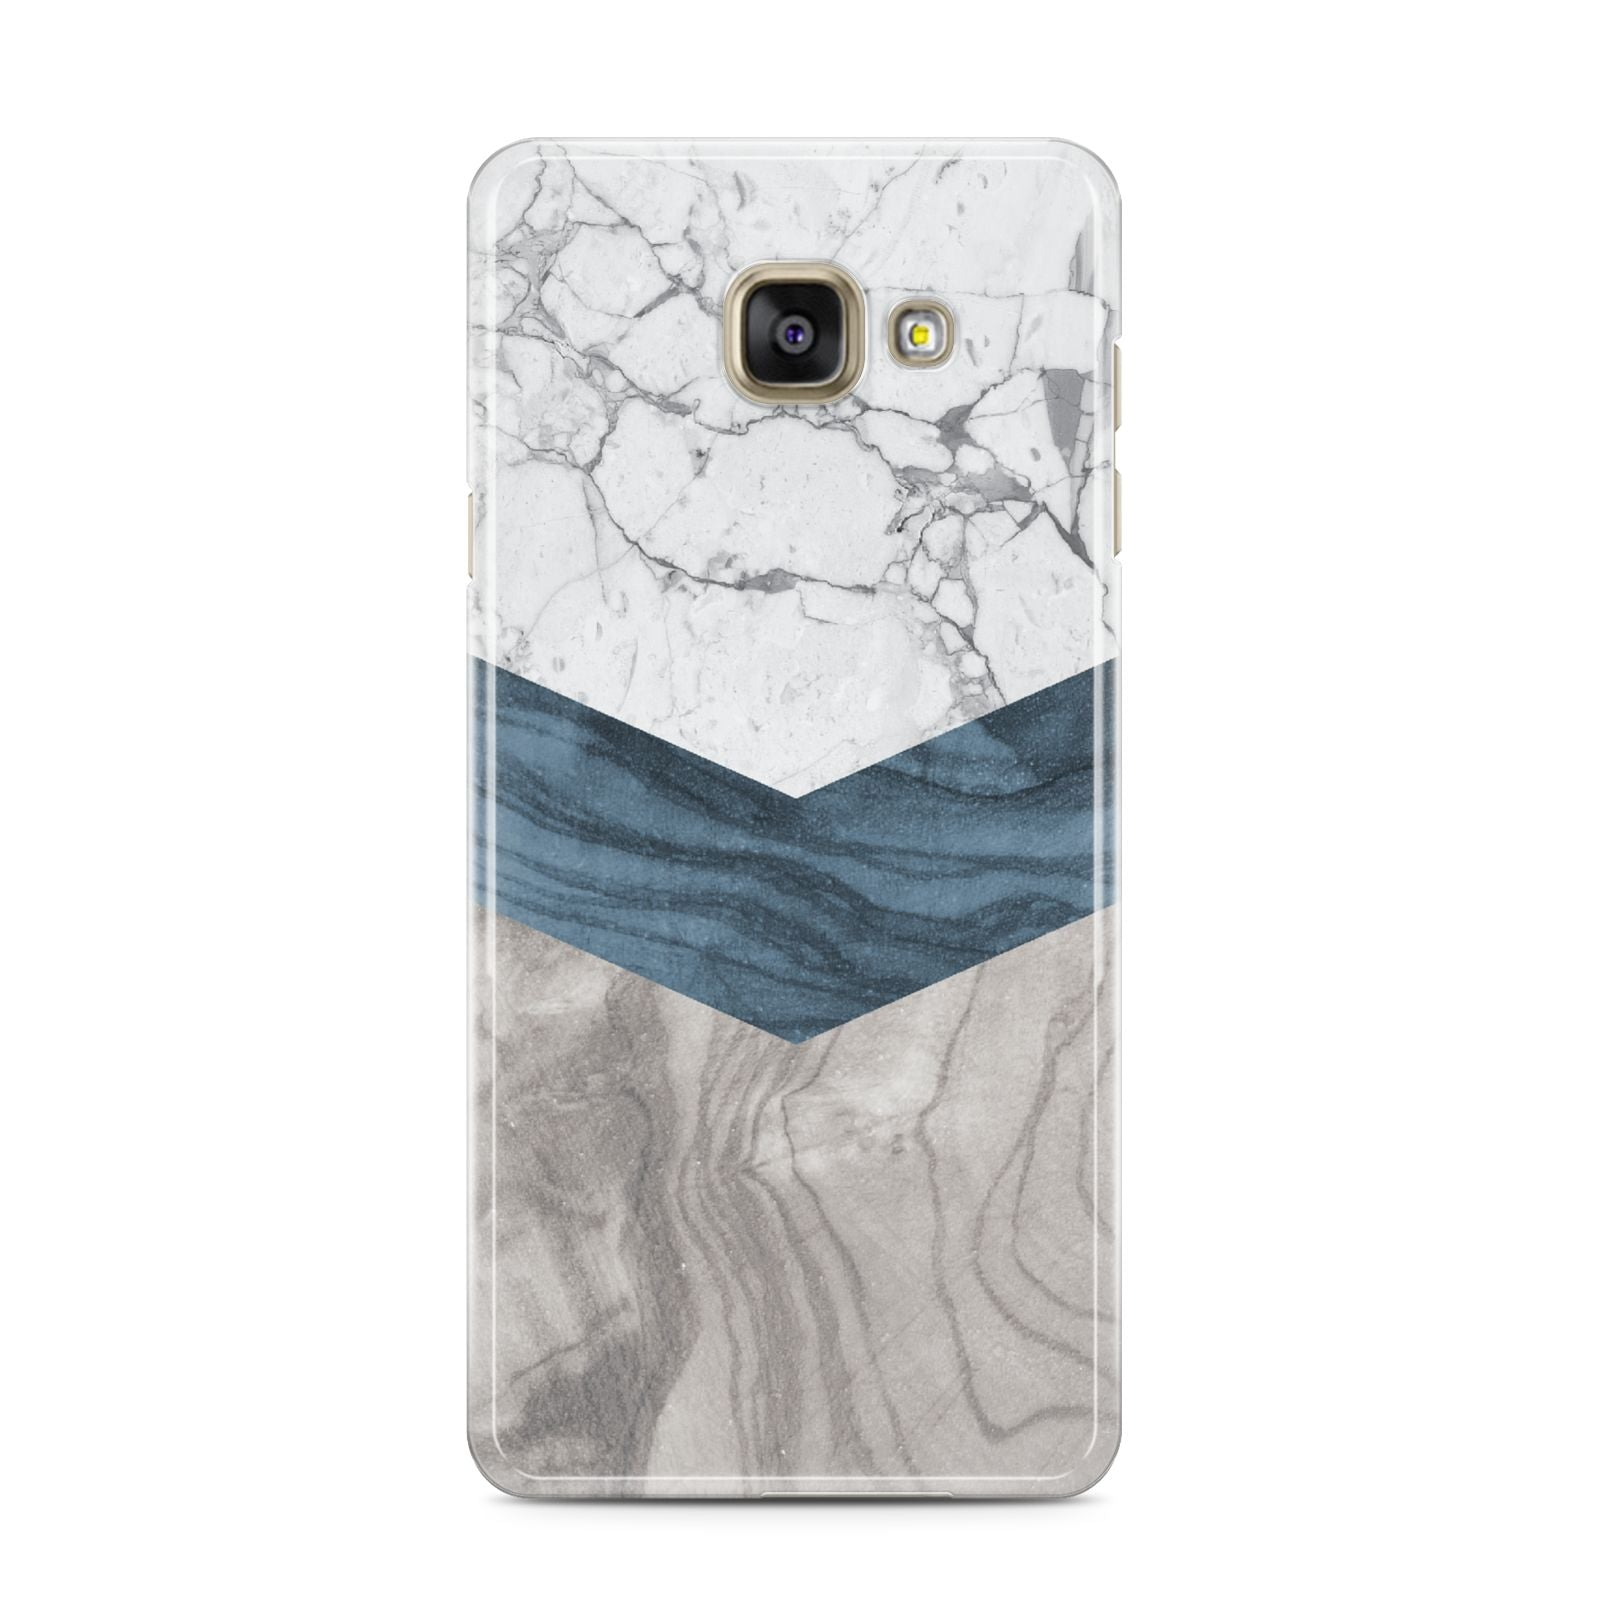 Marble Wood Geometric 8 Samsung Galaxy A3 2016 Case on gold phone